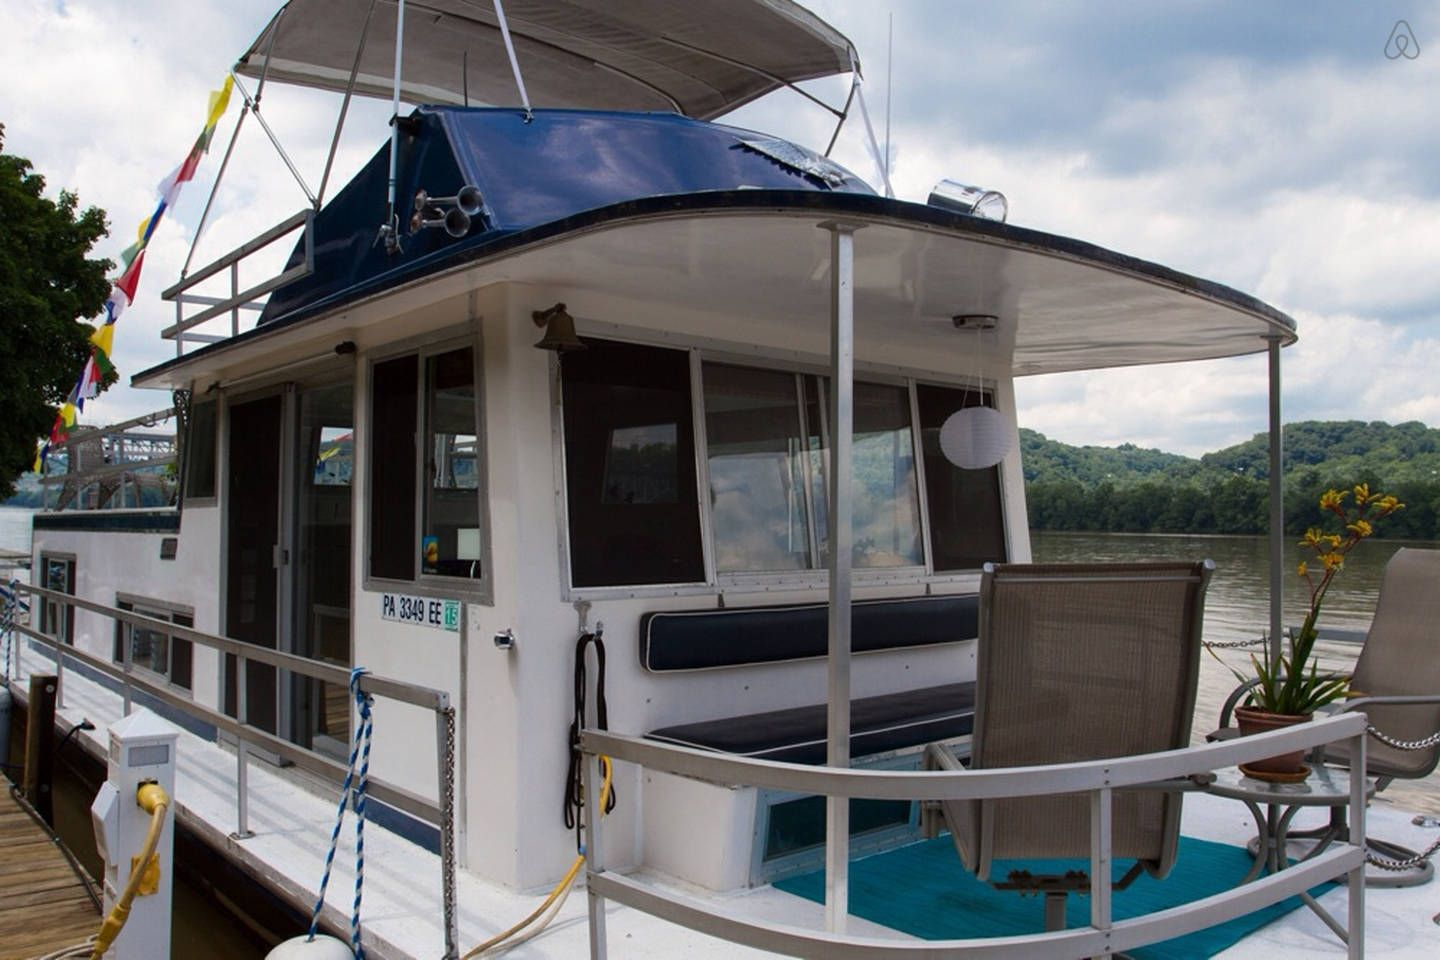 Houseboat Namaste B B At Choderwood In Pittsburgh House Boat Vacation Home Condo Rental